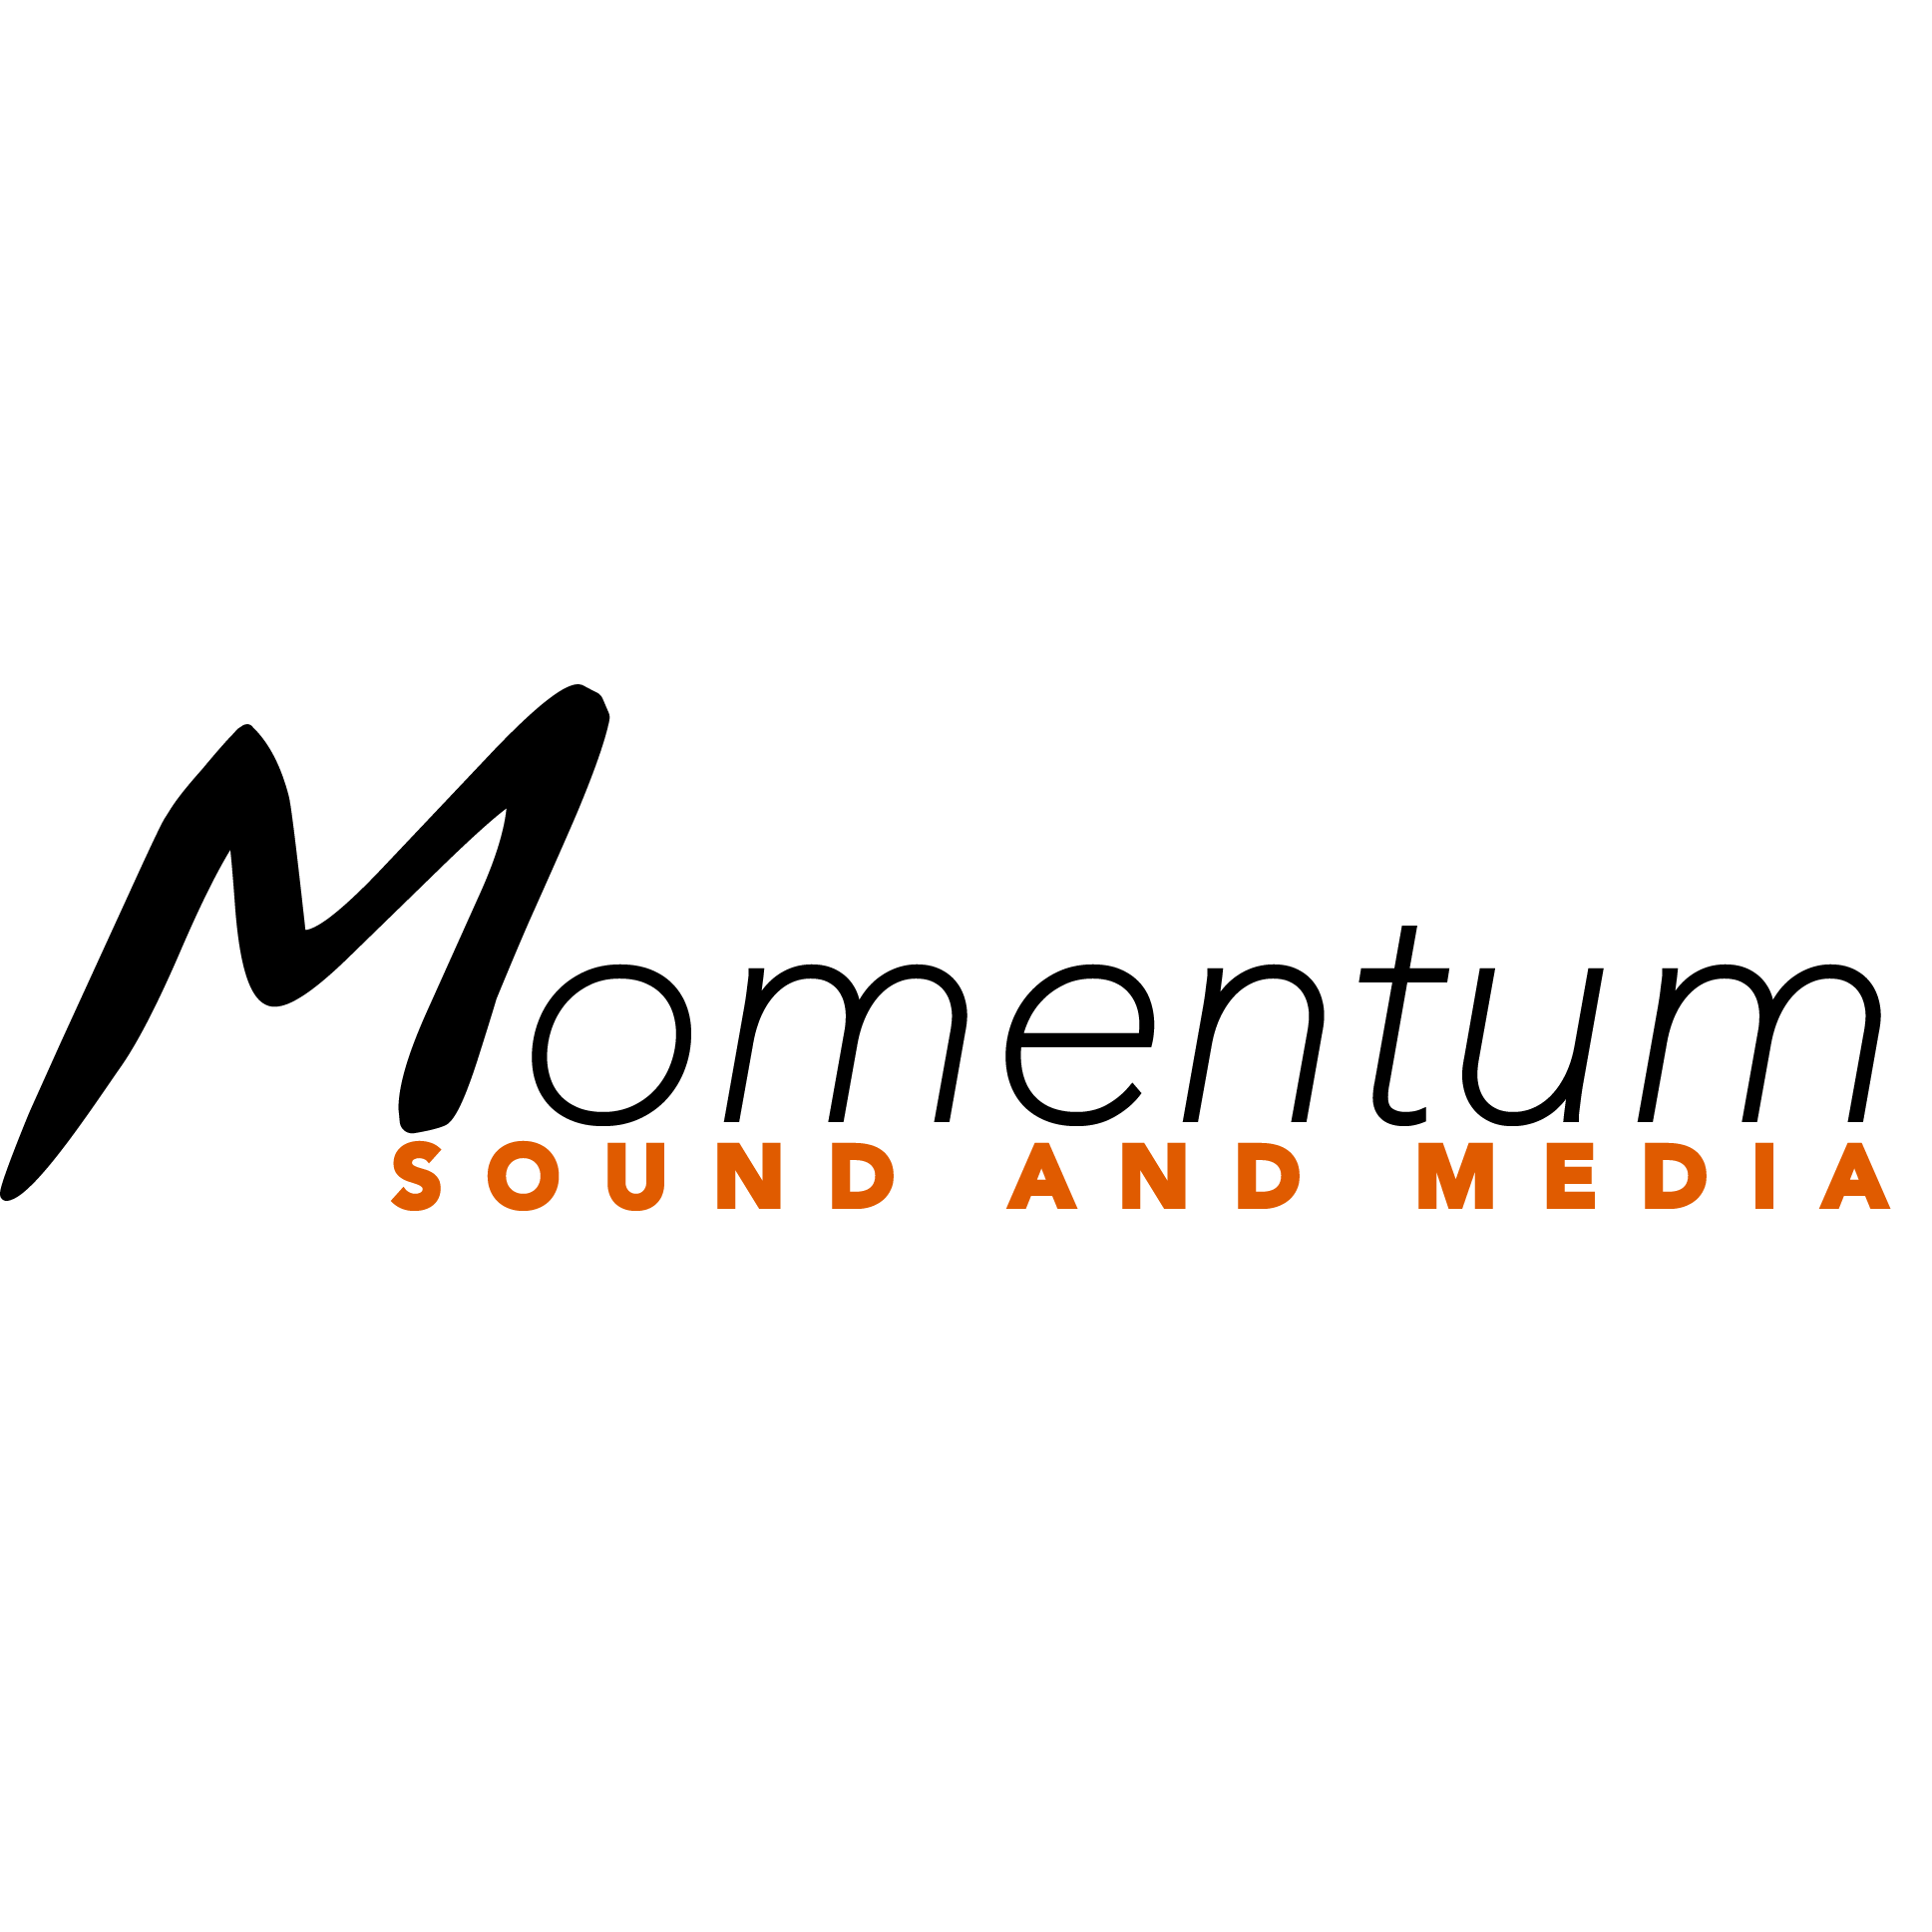 Momentum Sound and Media